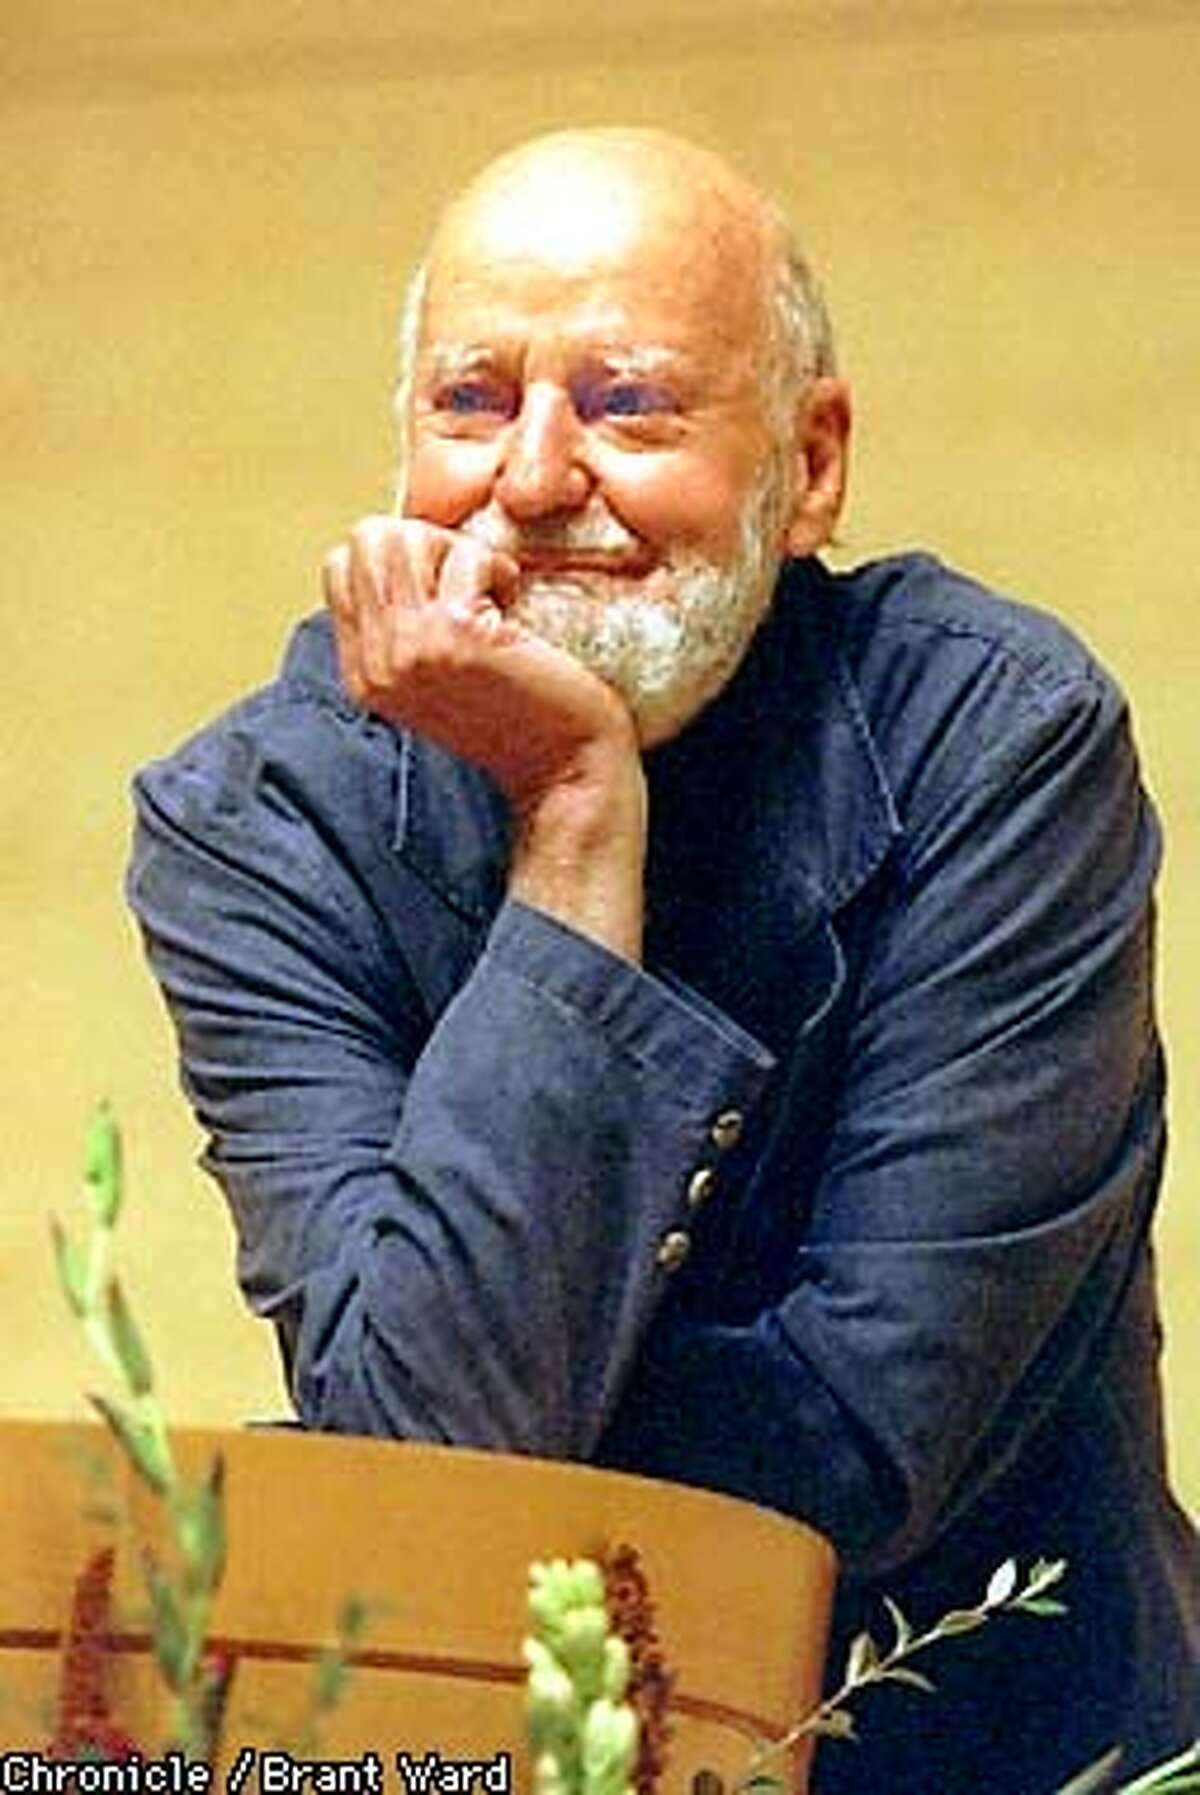 FERLINGHETTI/13OCT98/MN/BW--The new San Francisco poet laureate Lawrence Ferlinghetti politely listened to a heckler interrupt his poetry readings Tuesday night at the main Library. By Brant Ward/Chronicle. Also ran 10/28/2000.